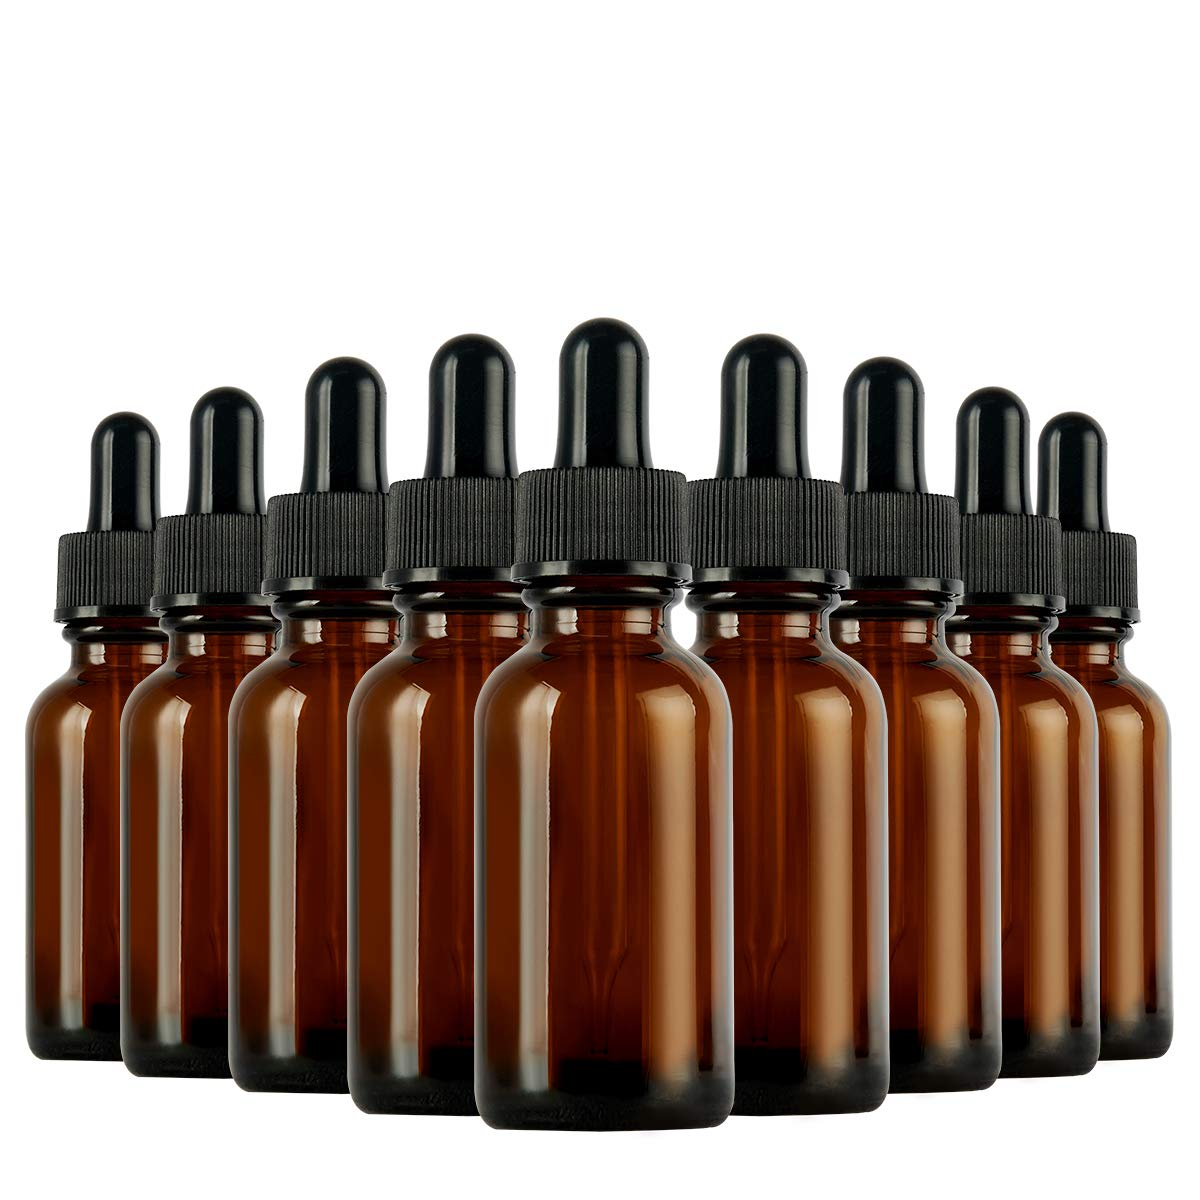 Eye Dropper Bottle, Hoa Kinh 48 Pack 1 oz 30ml Amber Glass Dropper Bottle with Droppers, 2 Funnels for Essential Oils, Perfumes (Brown, 1oz)